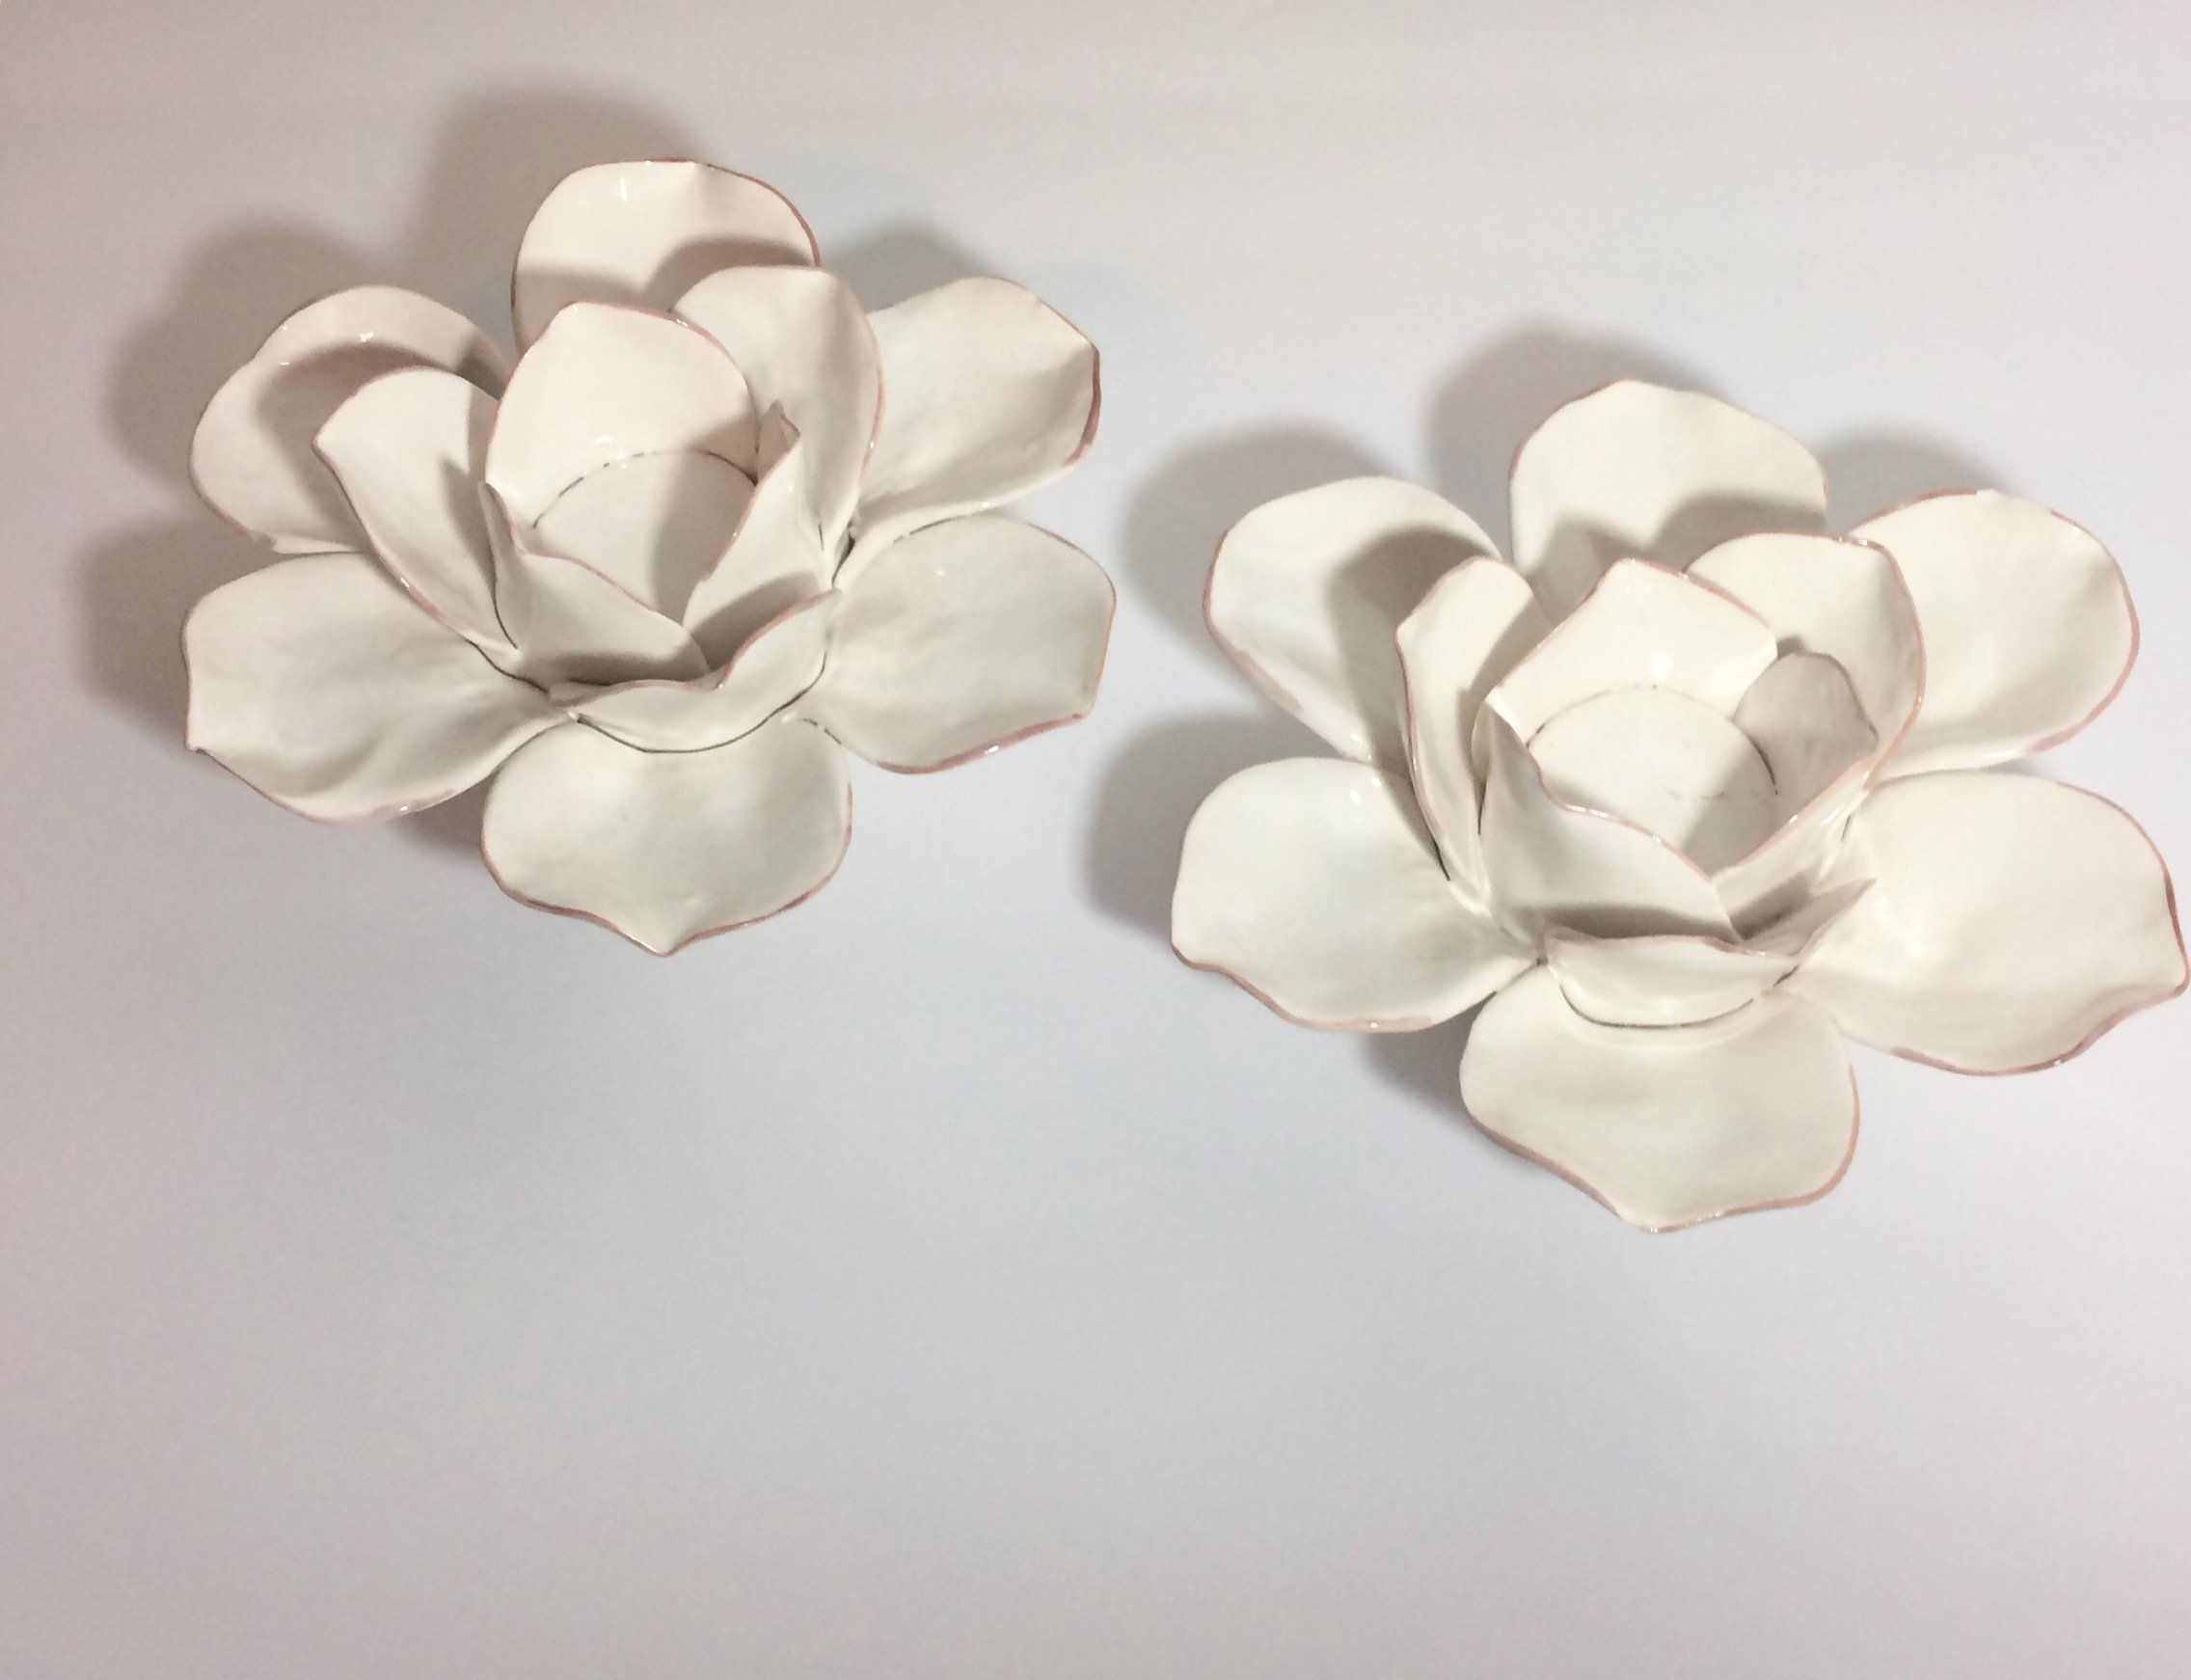 White lotus candle holders pair of ceramic lotus flower white lotus candle holders pair of ceramic lotus flower candleholders home decor tablescape by myvintageapartment on izmirmasajfo